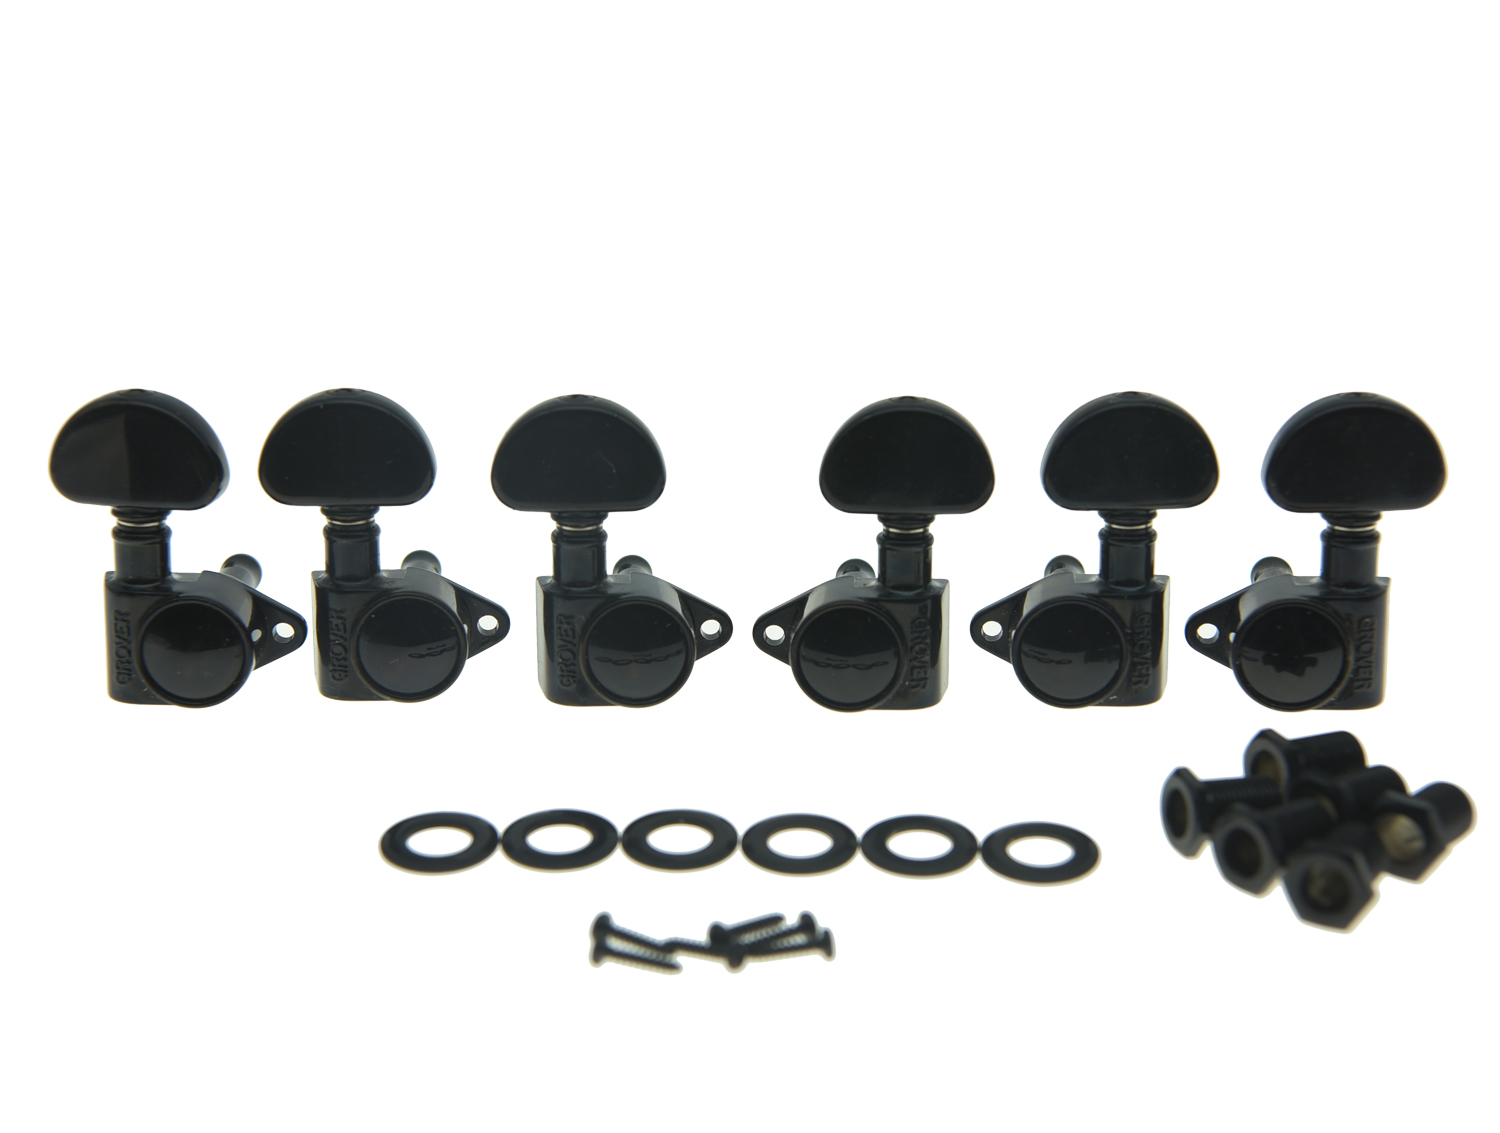 Dopro Grover Set of 6 Rotomatic 102-18 Series 102-18BC Guitar Tuners 3x3 Guitar Tuning Keys 18:1 Guitar Machine Heads Black the black keys the black keys el camino 2 lp